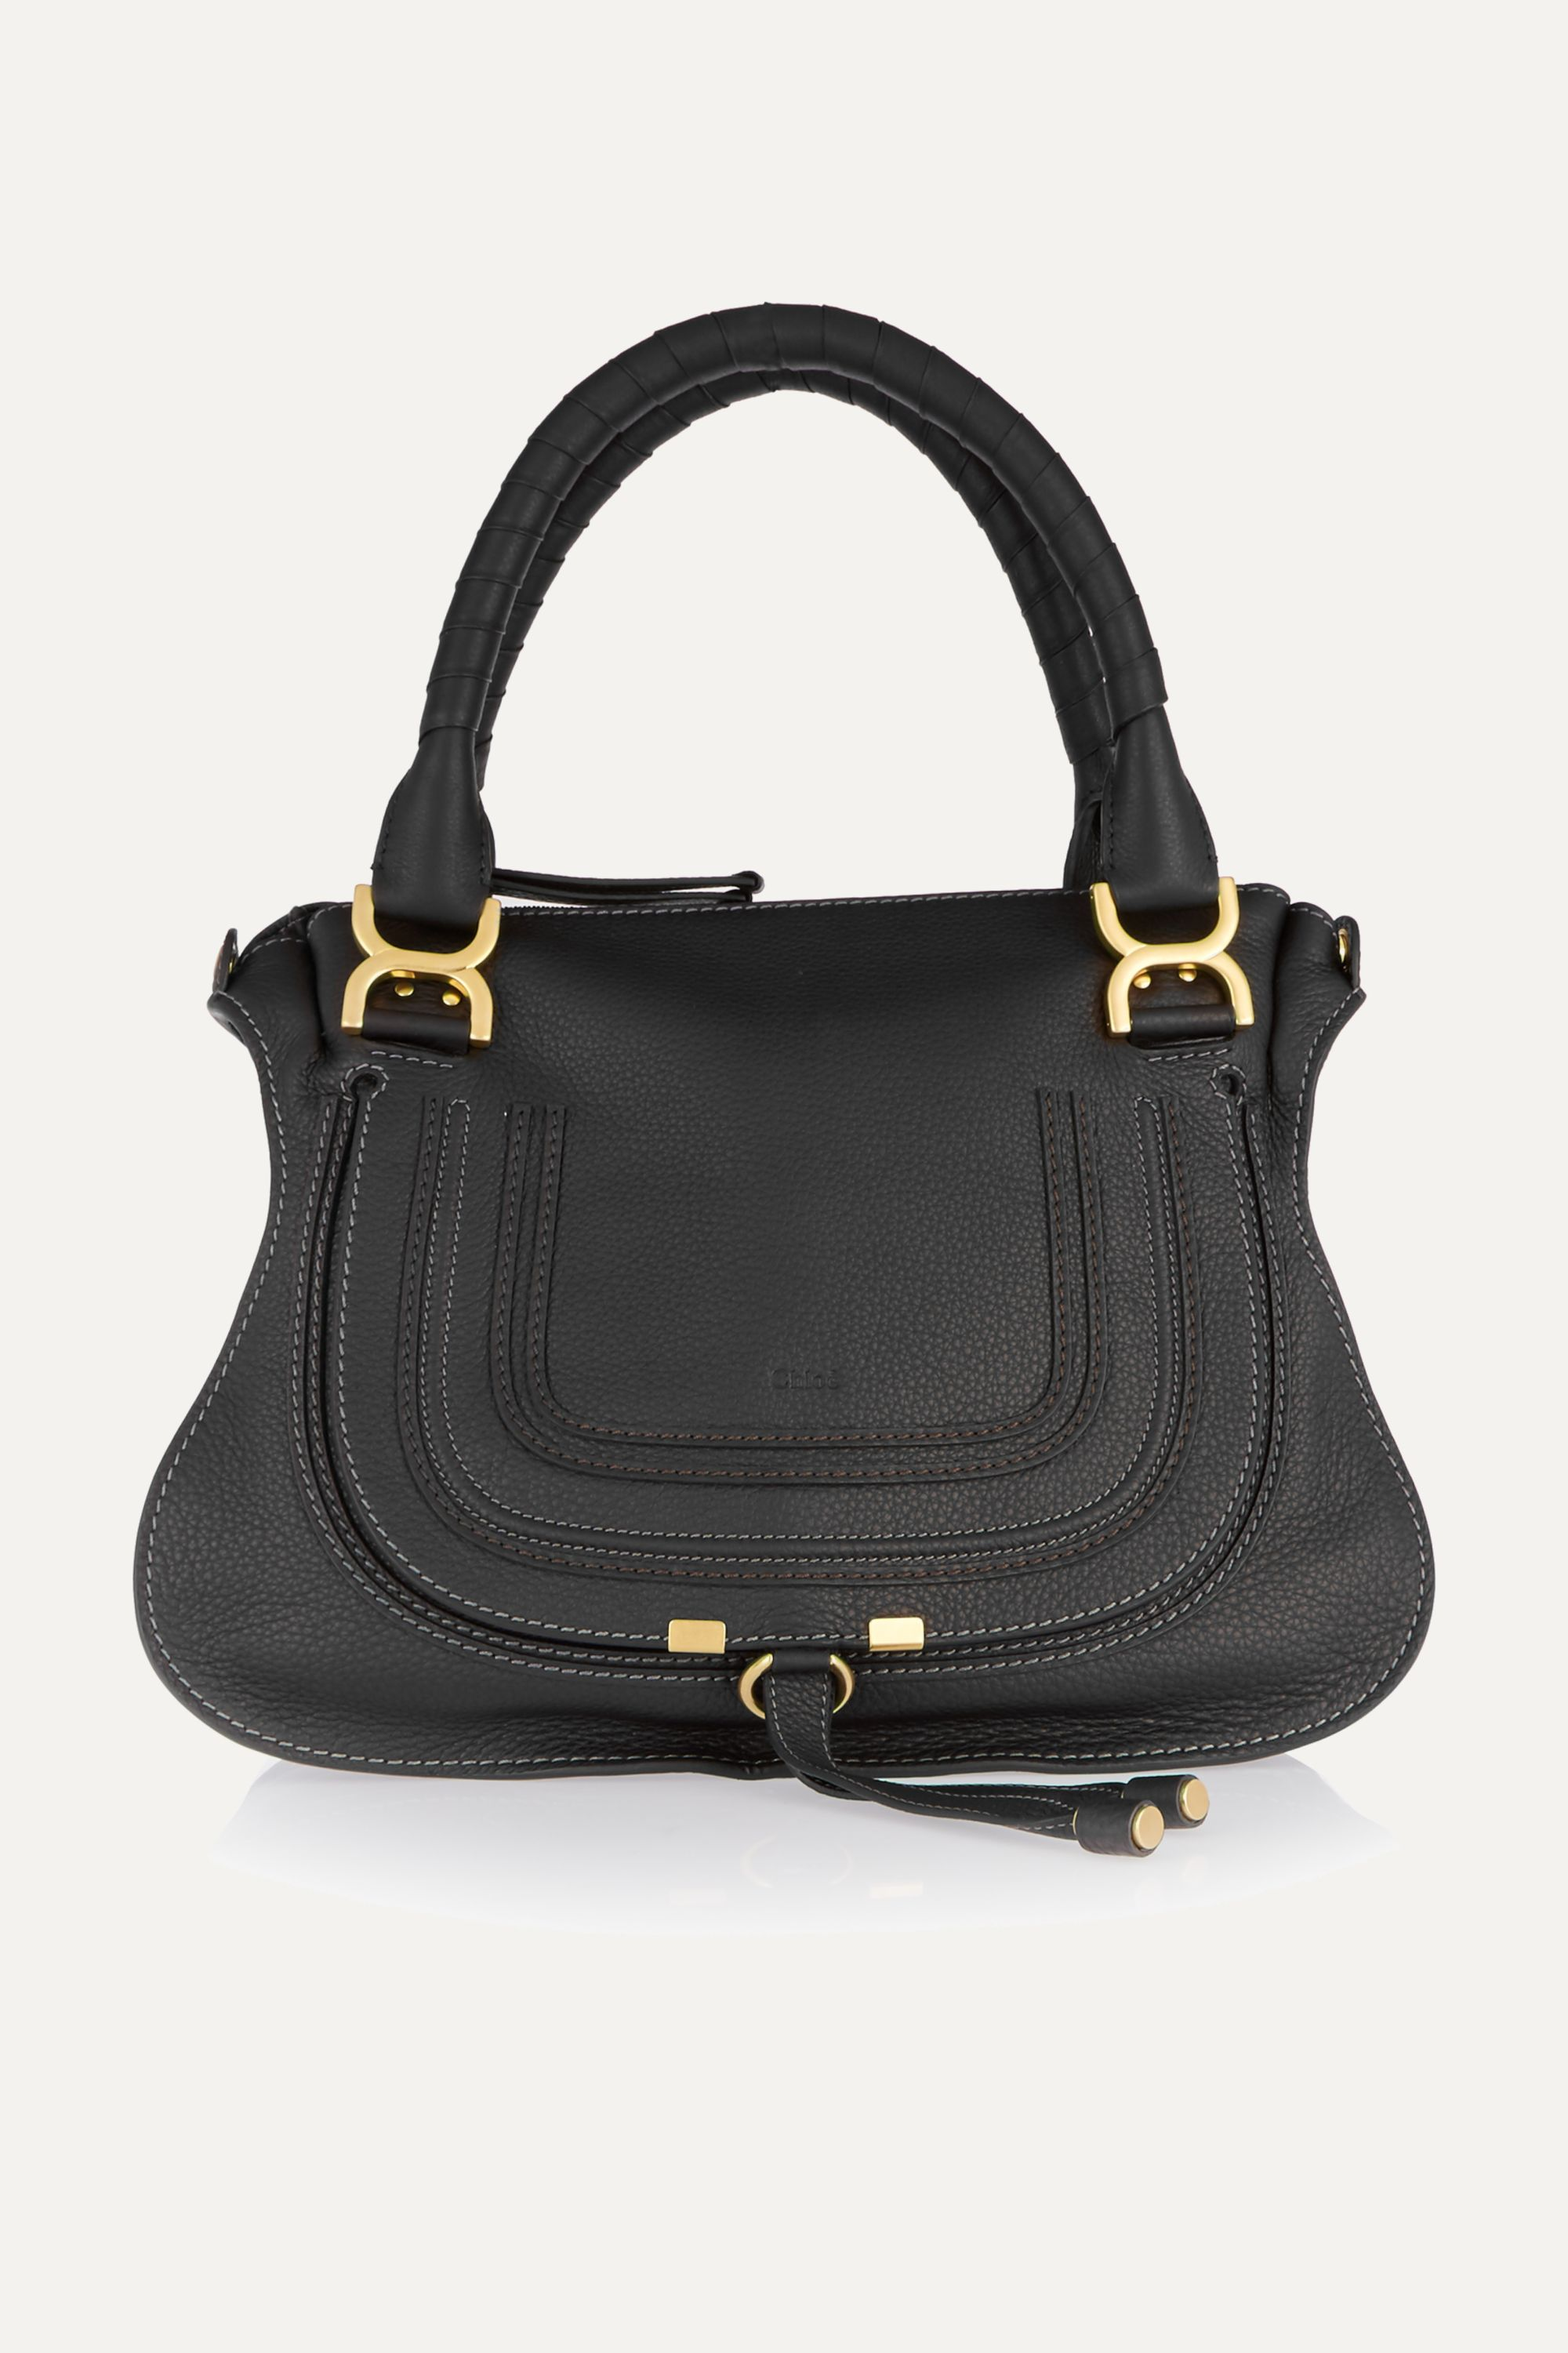 Chloé Marcie Medium Textured-leather Shoulder Bag In Black